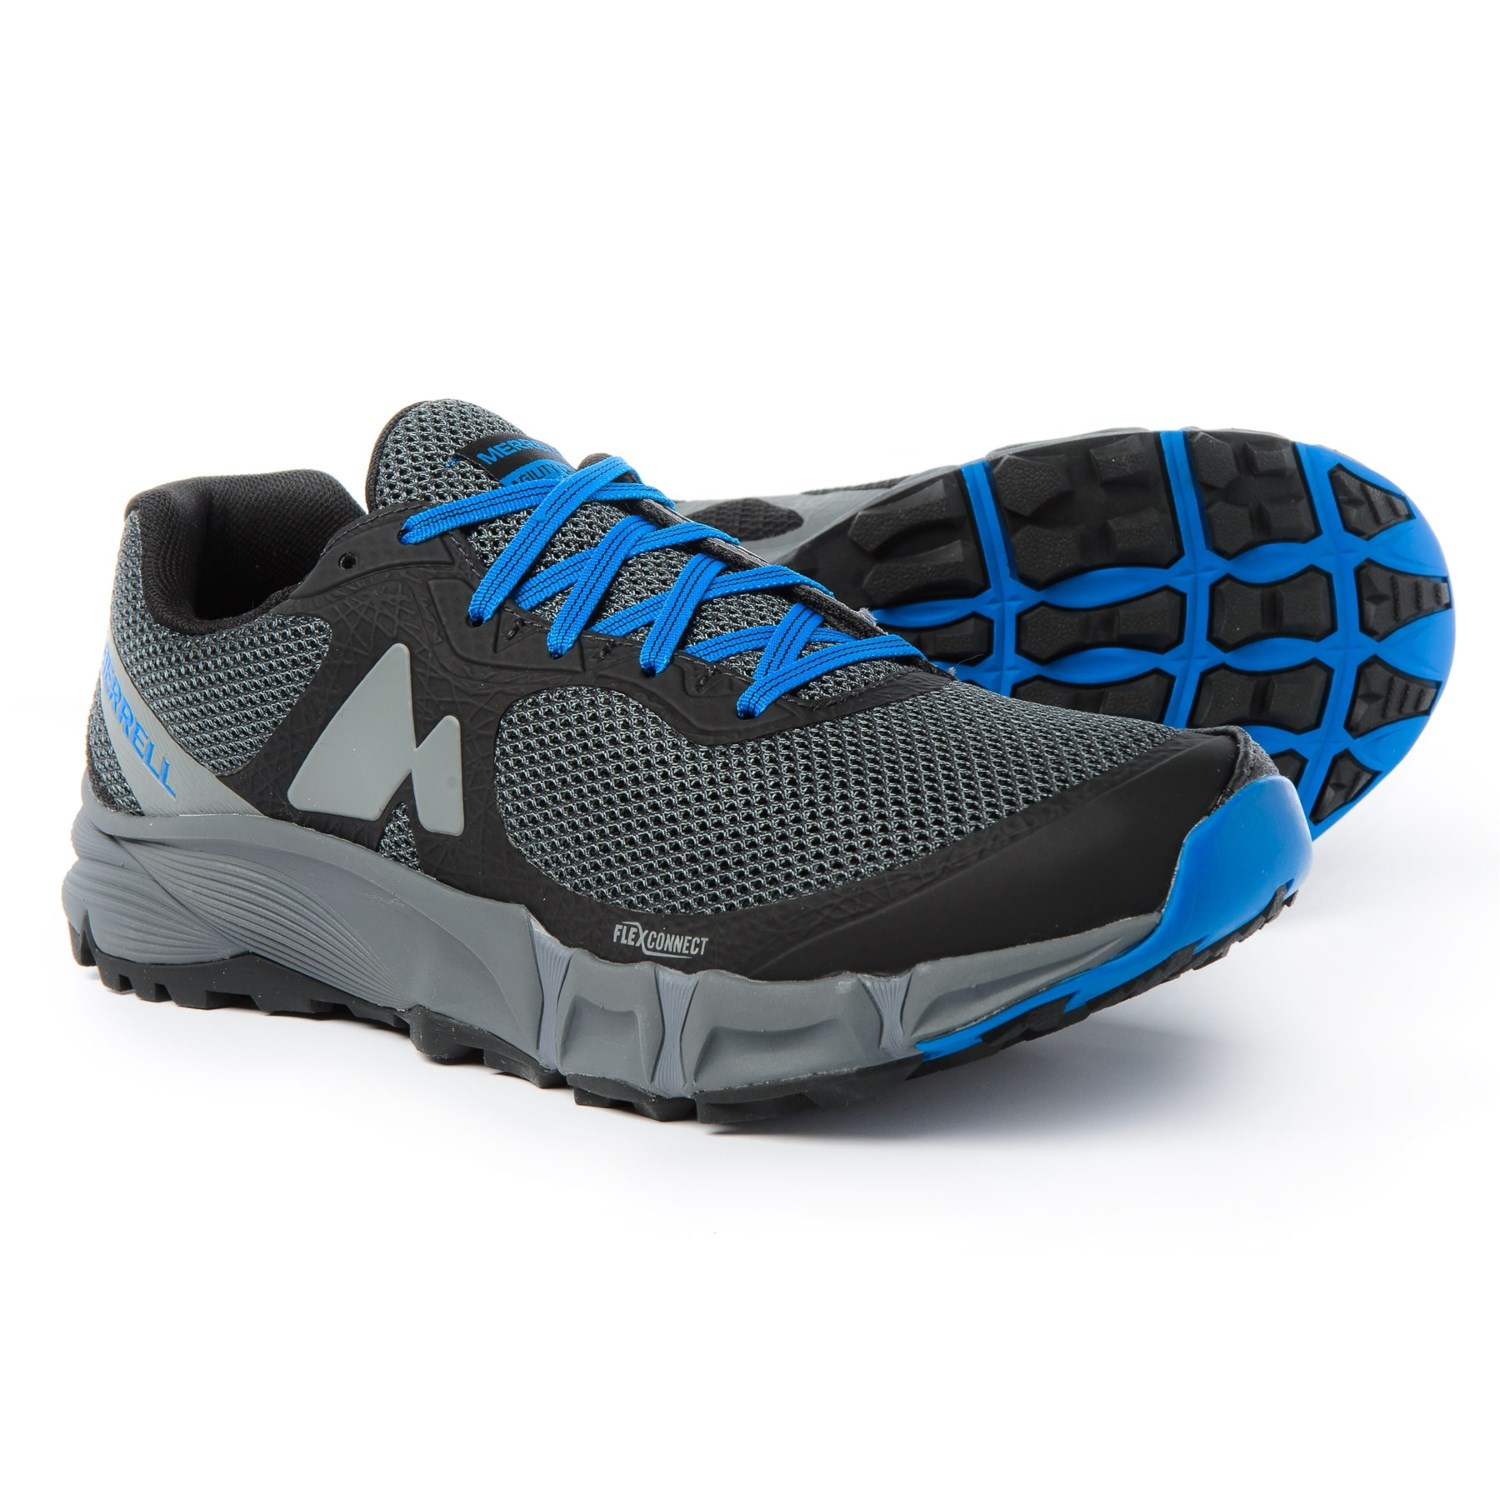 Mens Trail Running Shoes Waterproof Running Shoes Rei